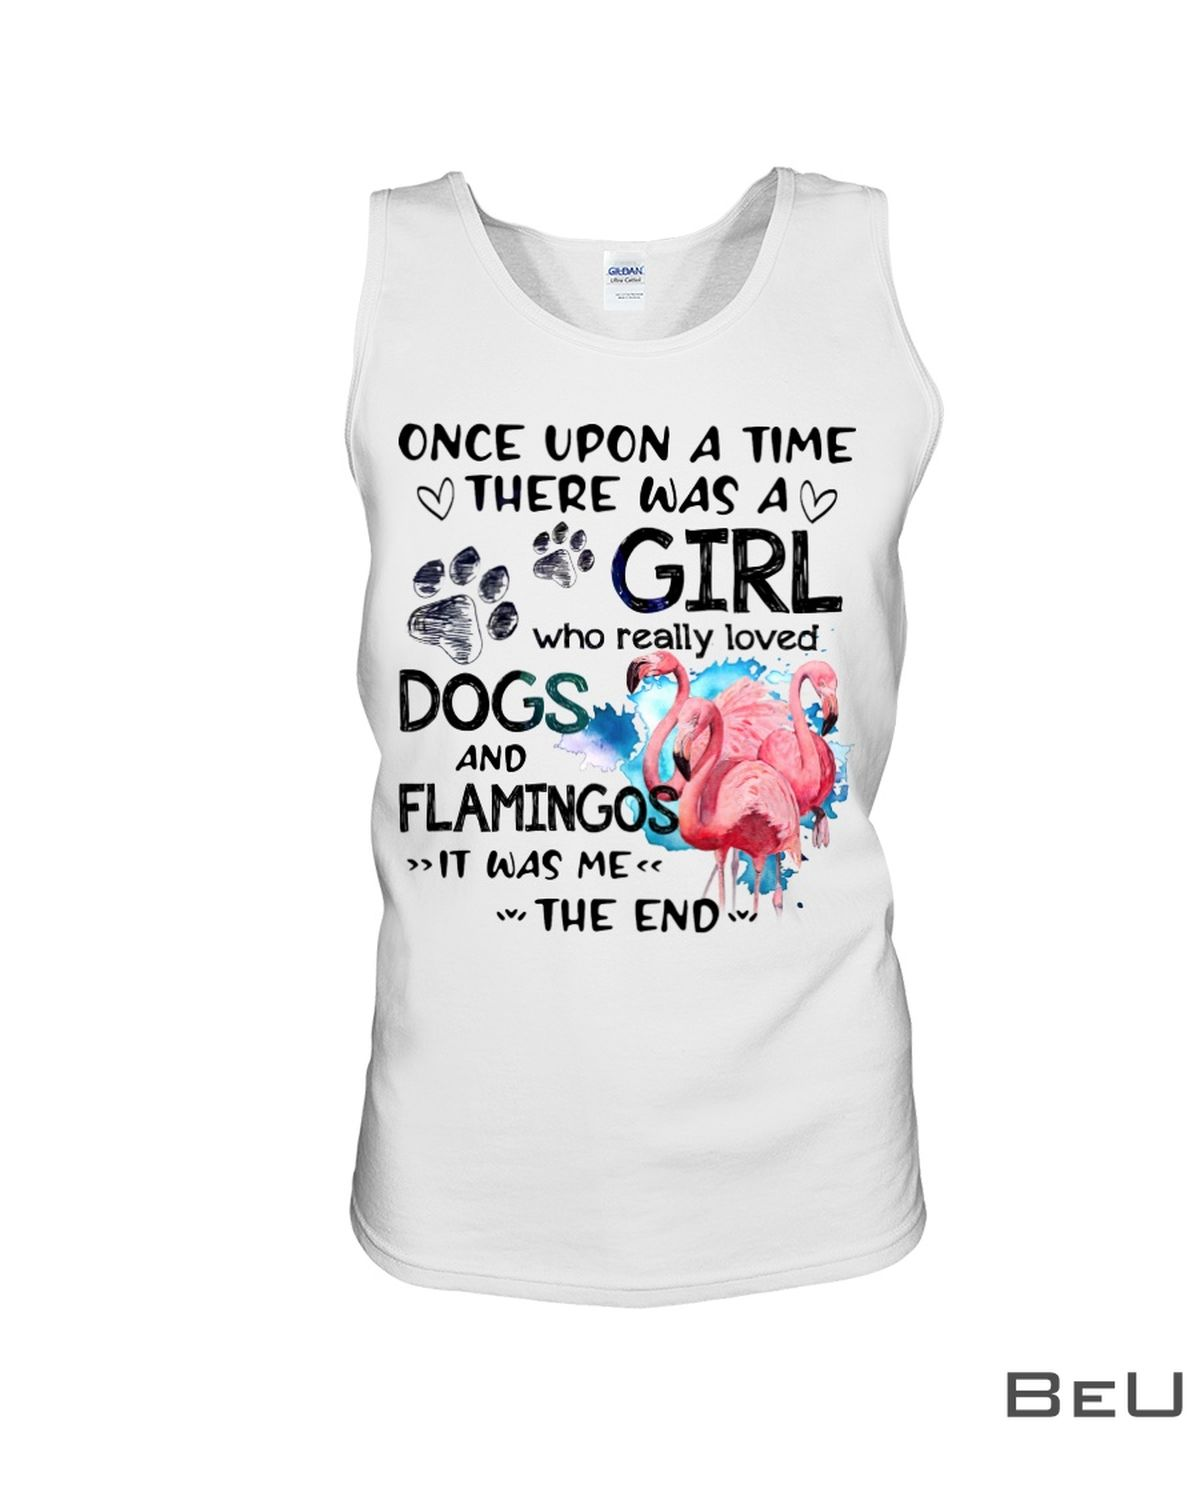 Once Upon A Time There Was A Girl Who Really Loved Dogs And Flamingos Shirtc